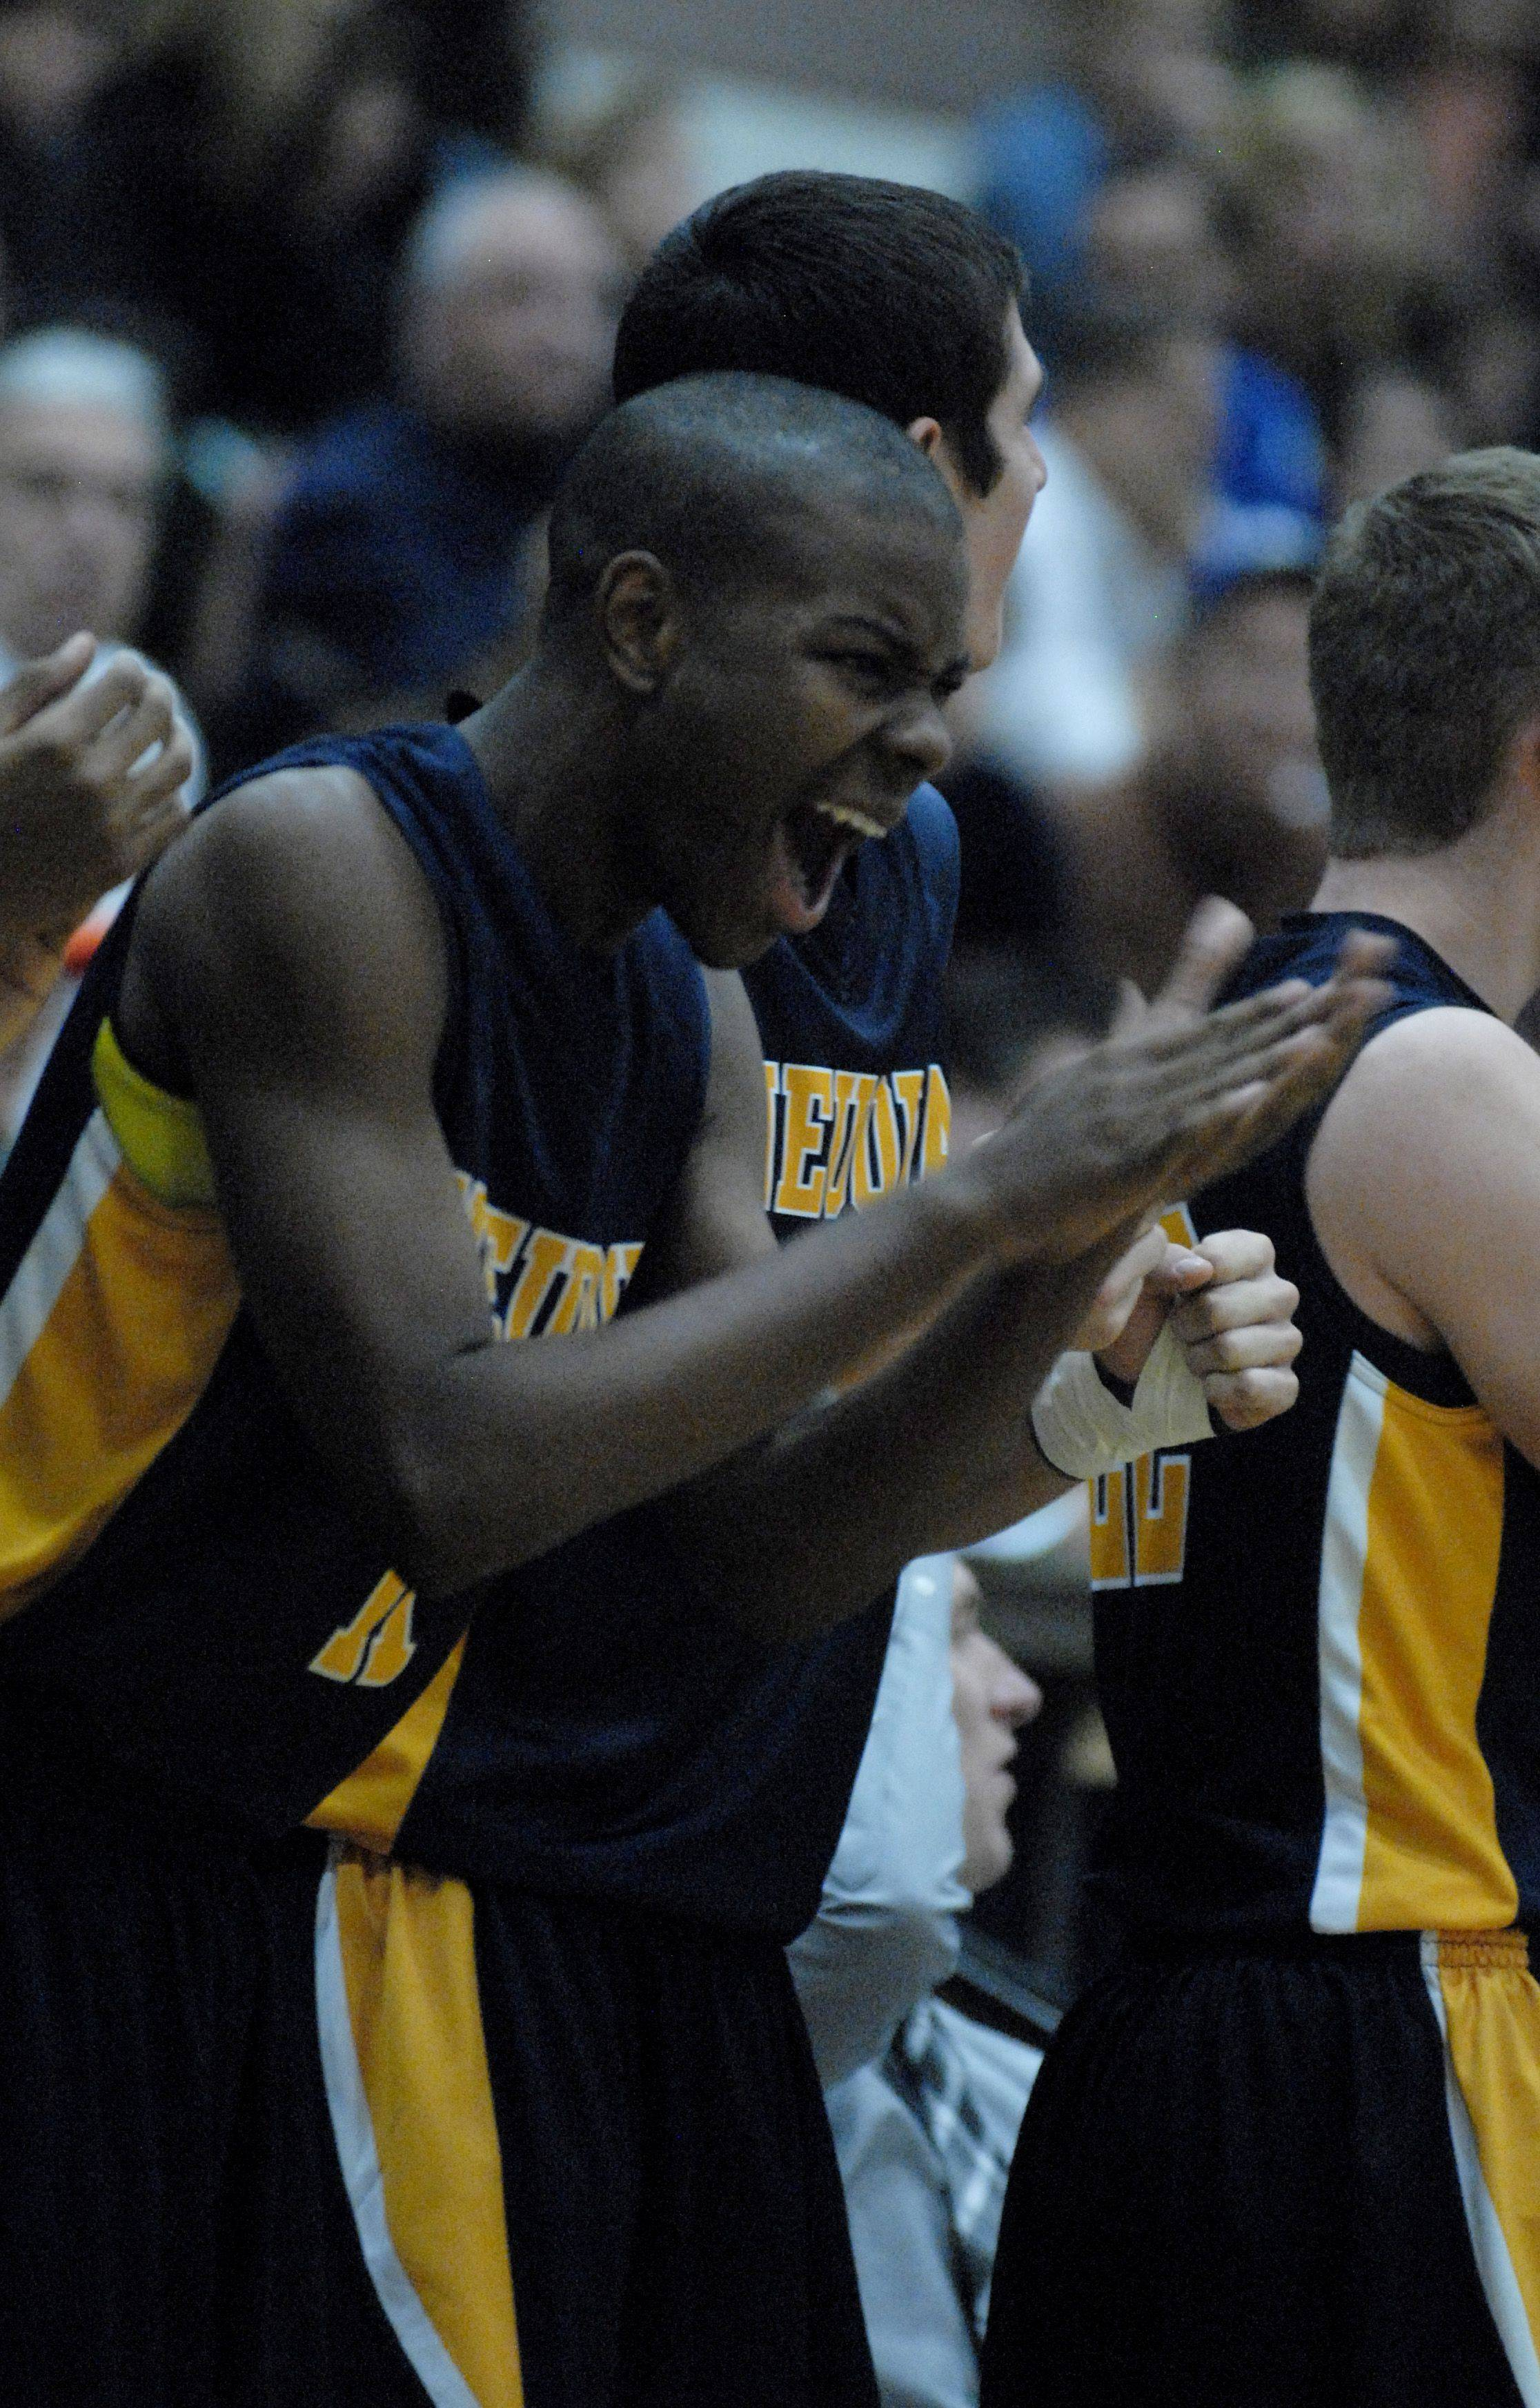 Peter Catchings of Neuqua Valley reacts to the action on the court at St. Charles North High School.